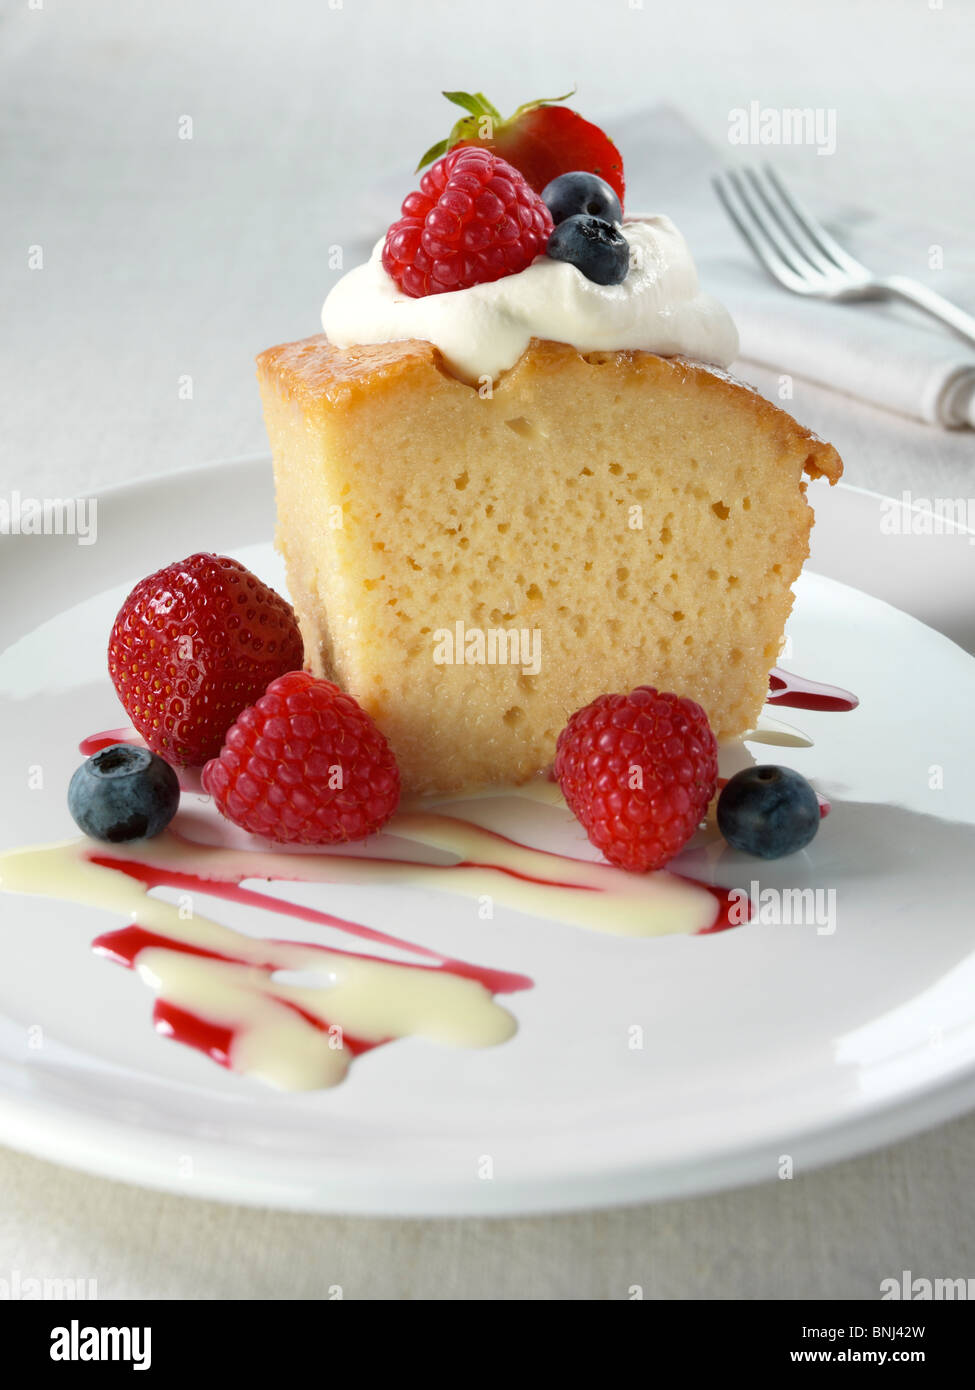 Looking For A Recipe With Lemon Cake Condensed Milk